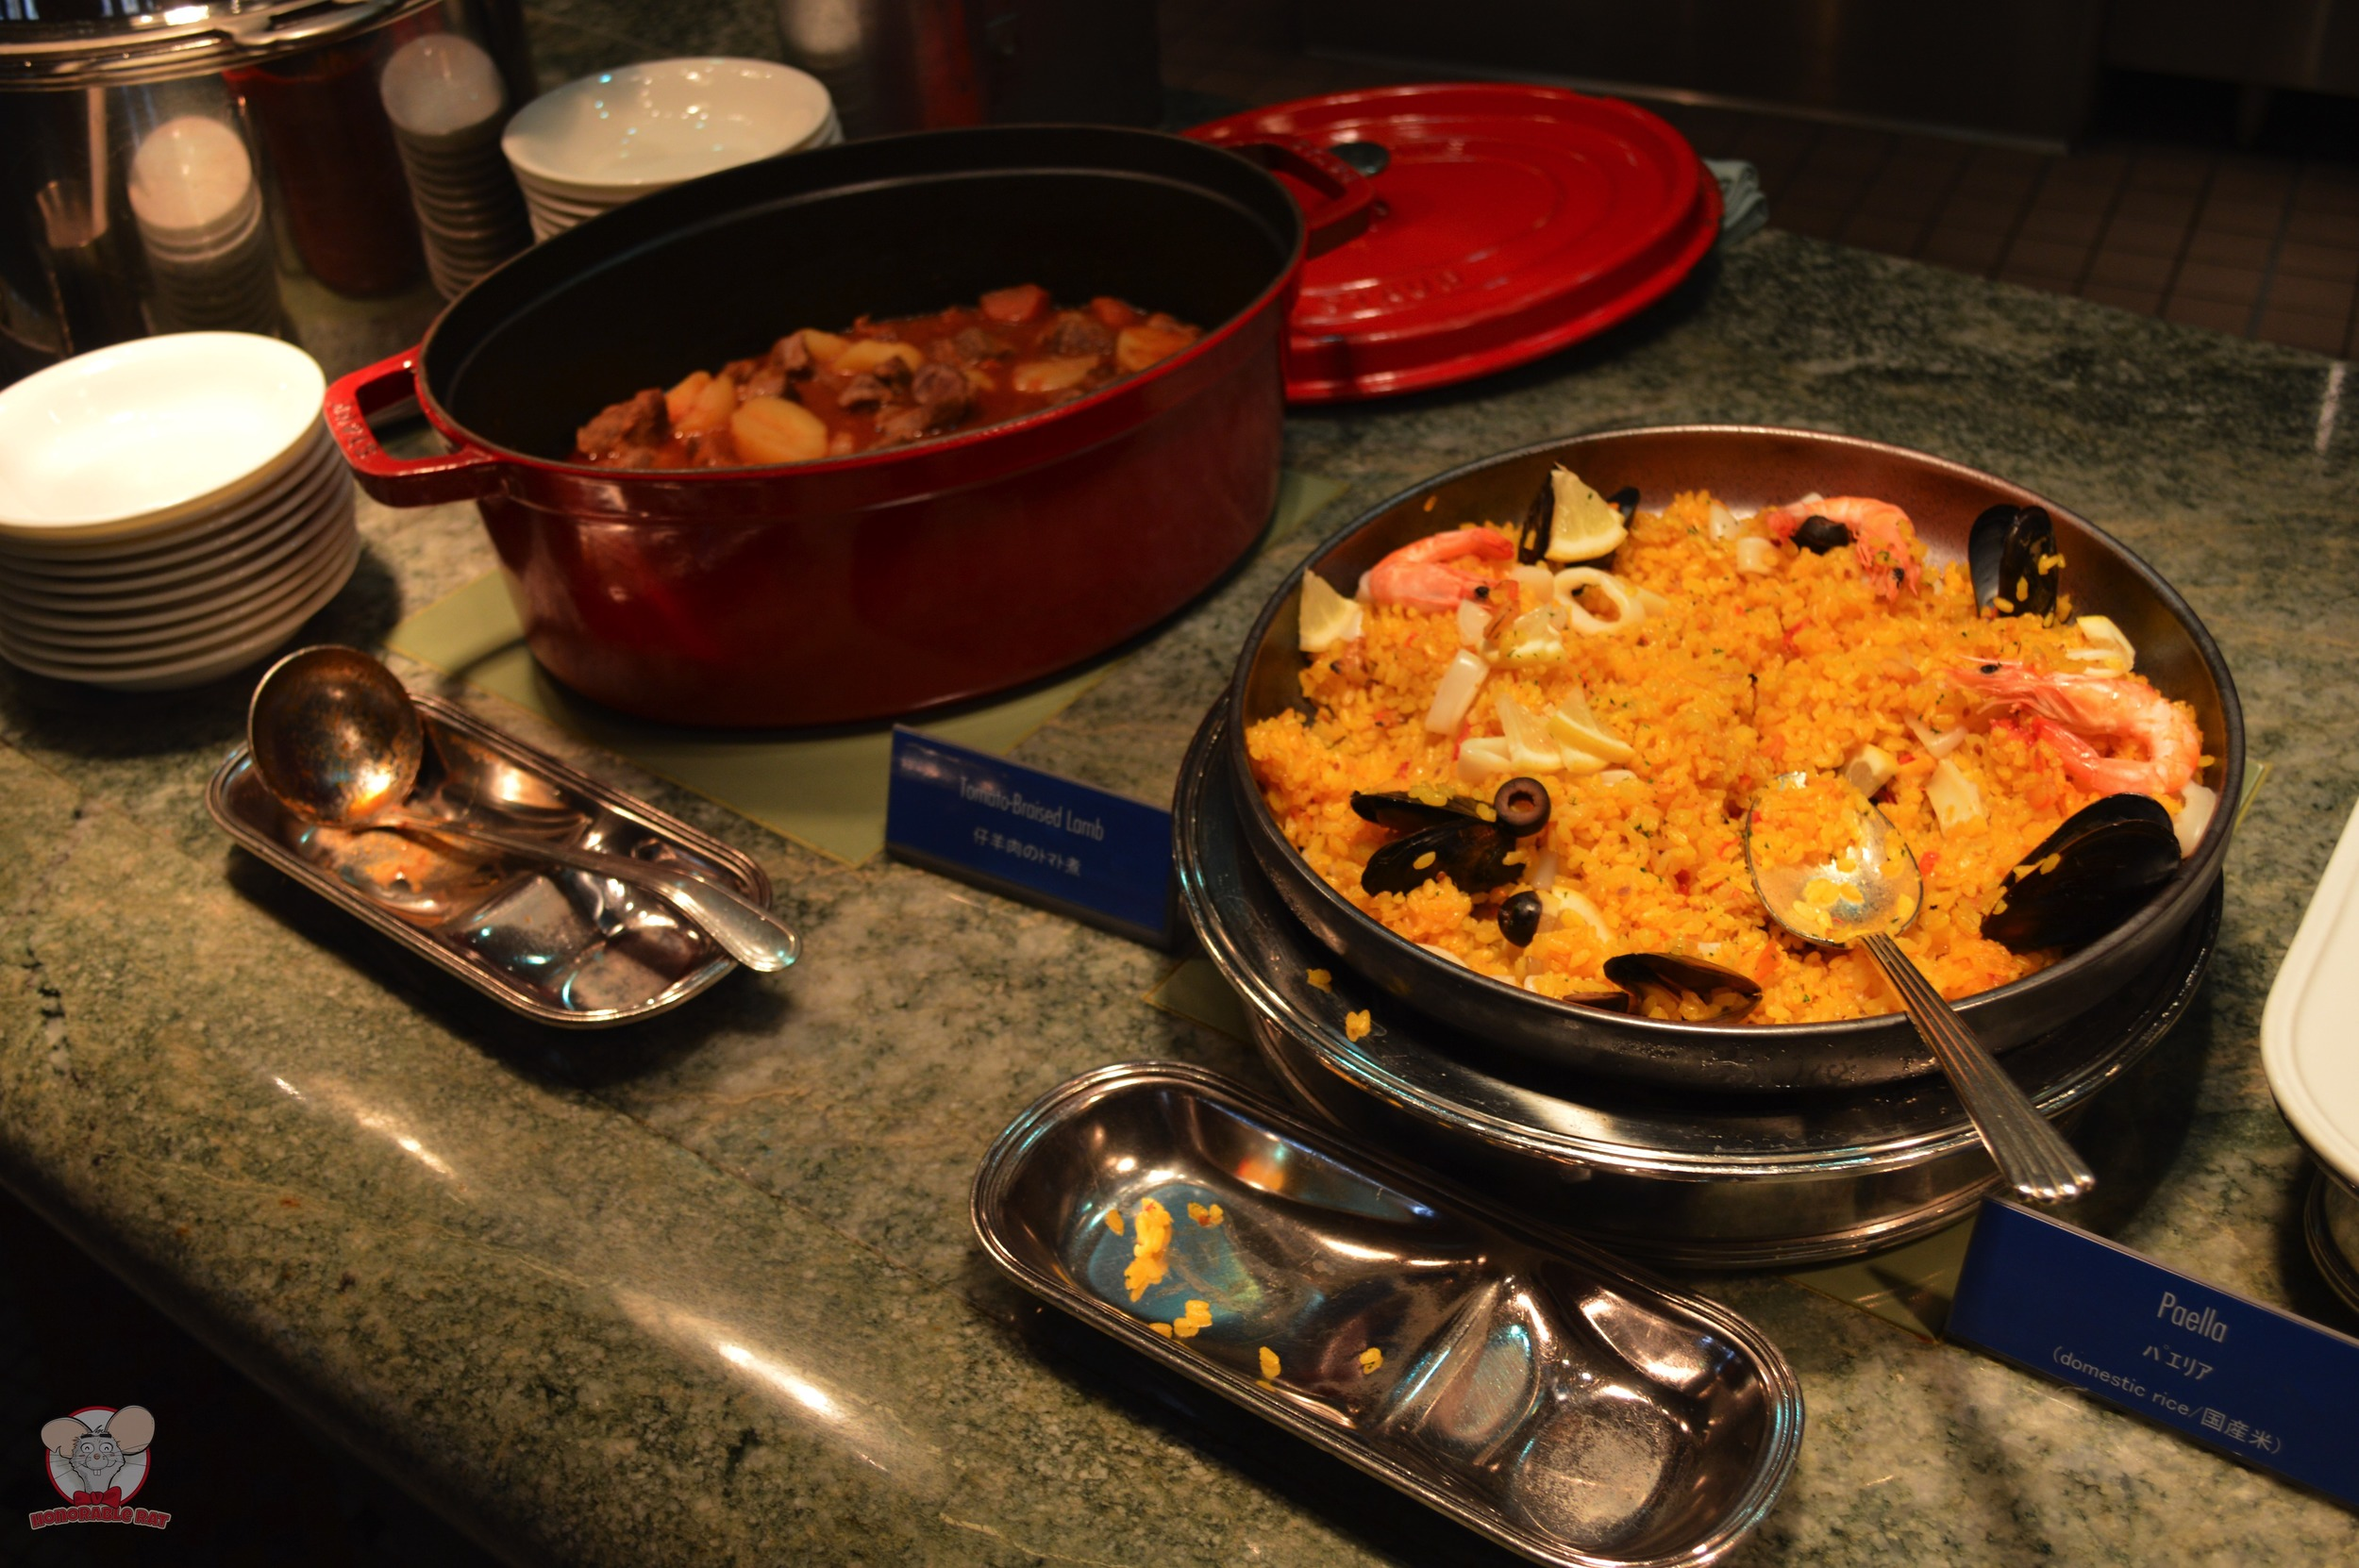 Tomato-Braised Lamb (Left), Paella (Right)